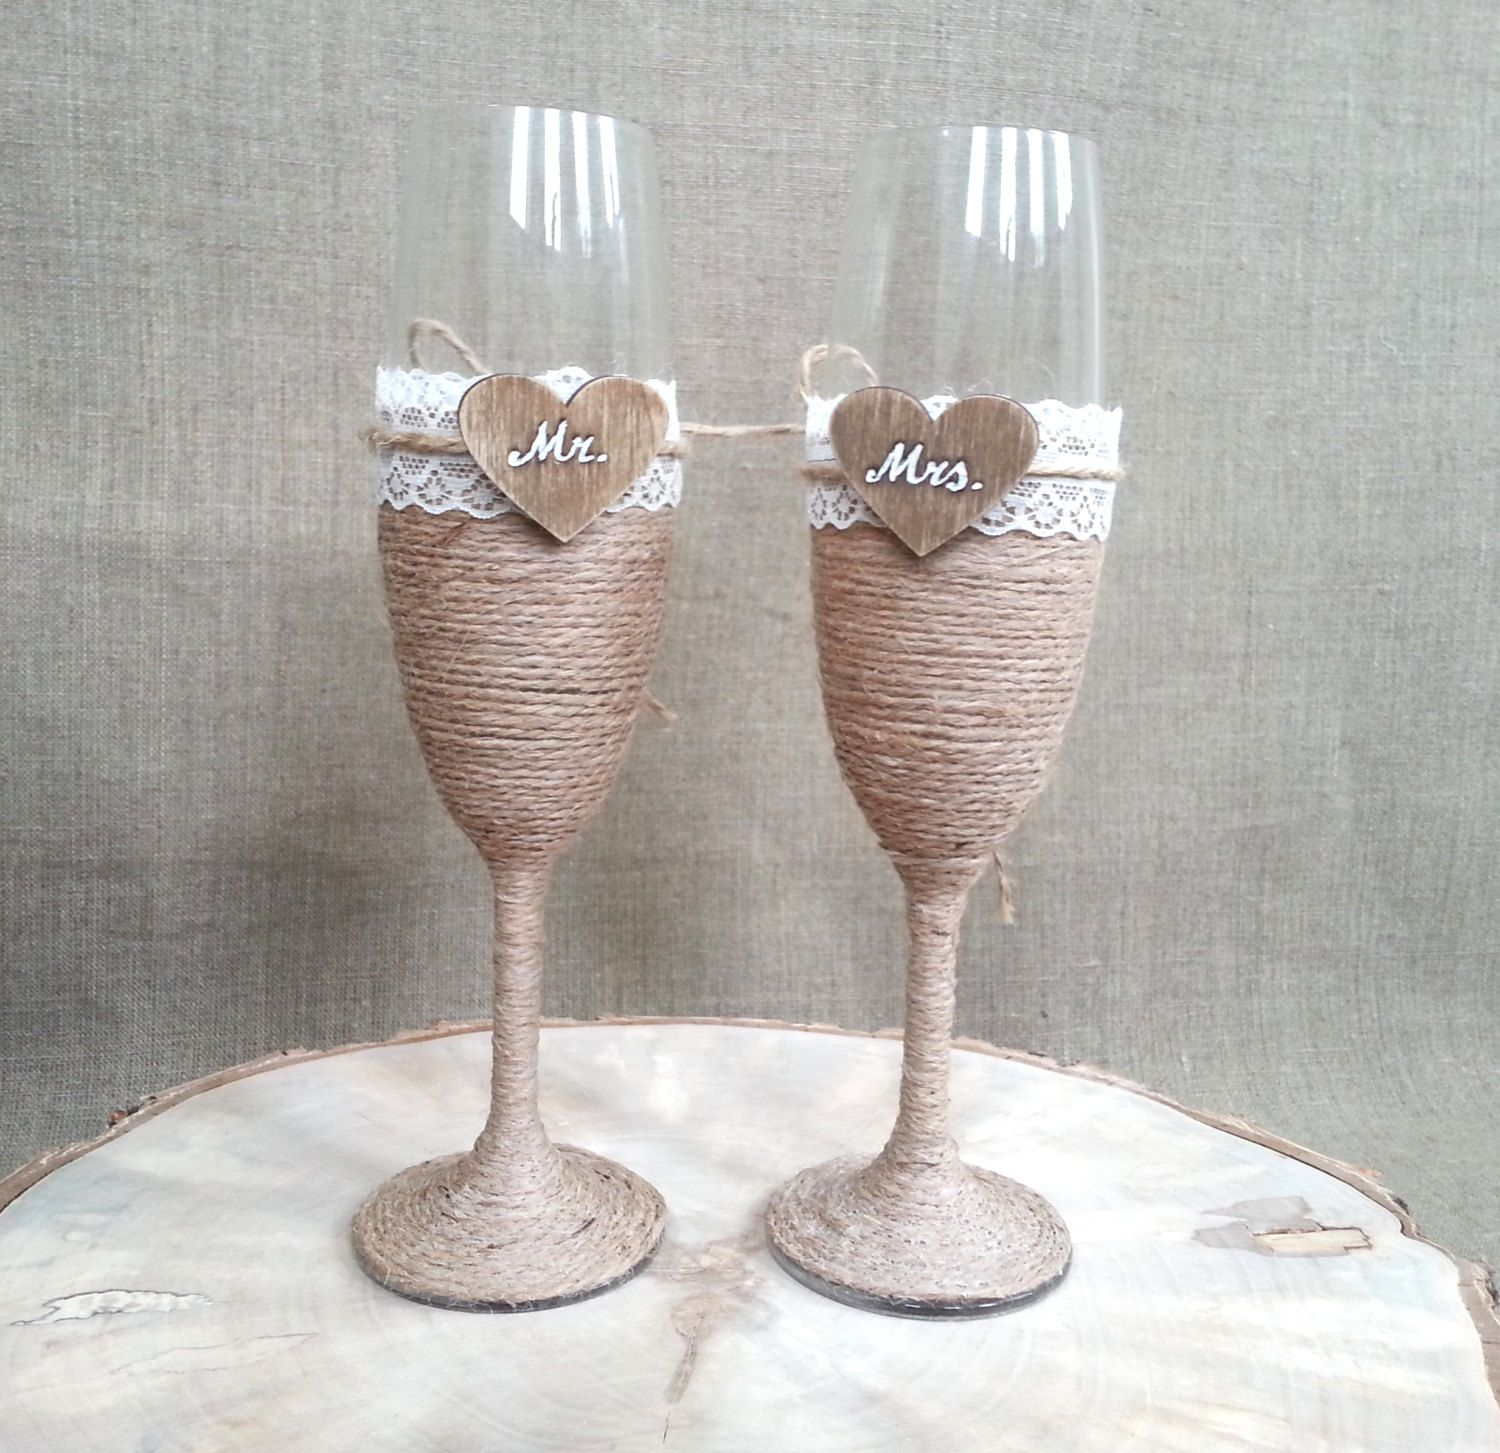 Personalized Wedding Champagne Glasses, Bride And Groom Toast Glasses, Wedding